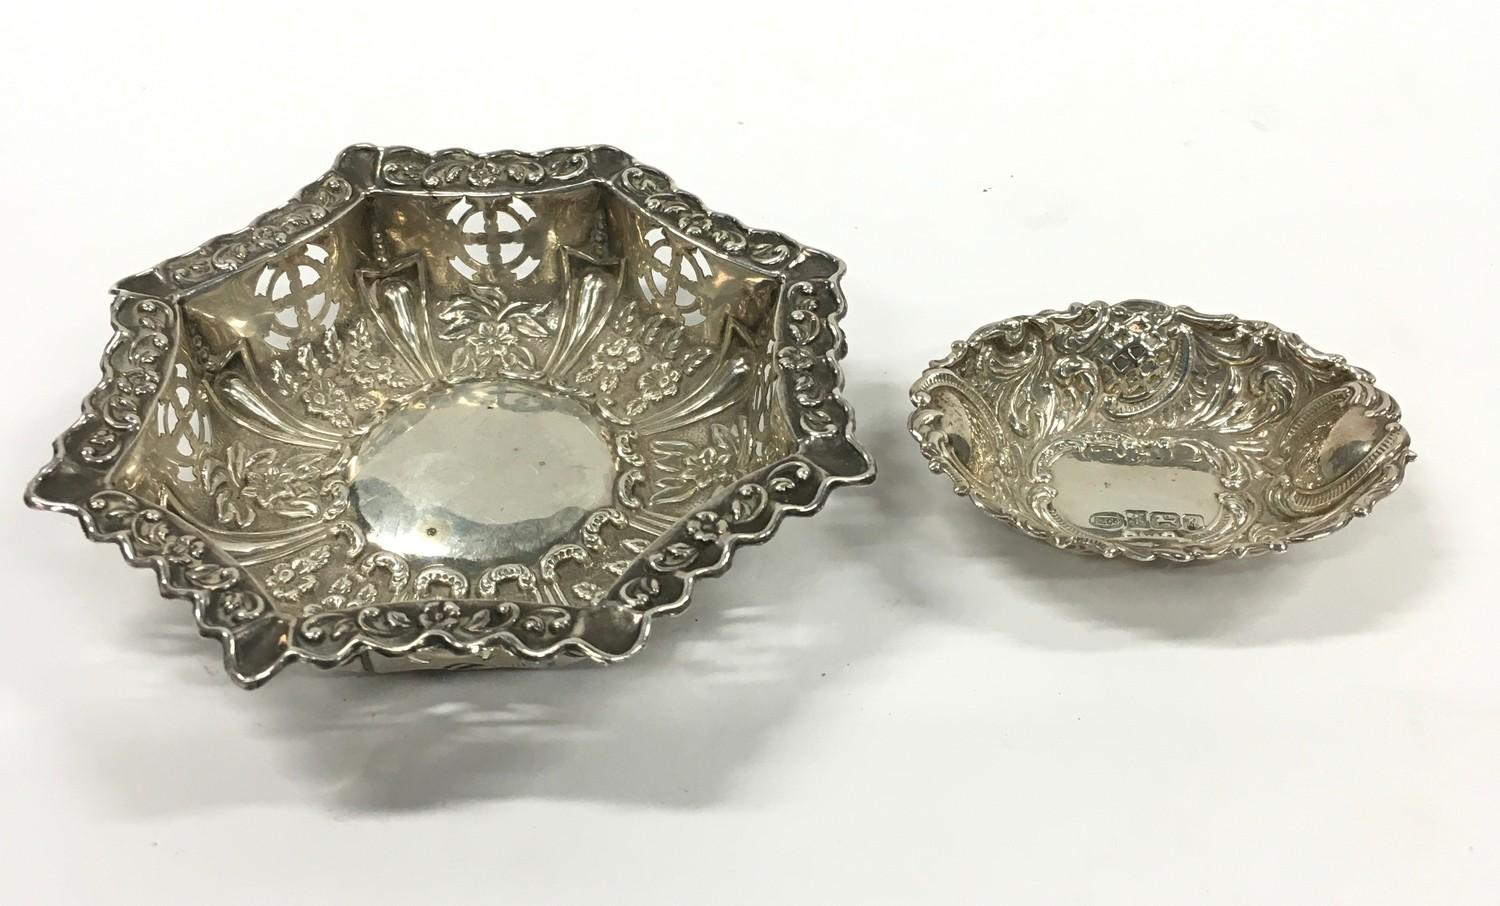 Silver Hallmarked Repousse Dish in Hexagonal Form together with a Silver Hallmarked Repousse Pin